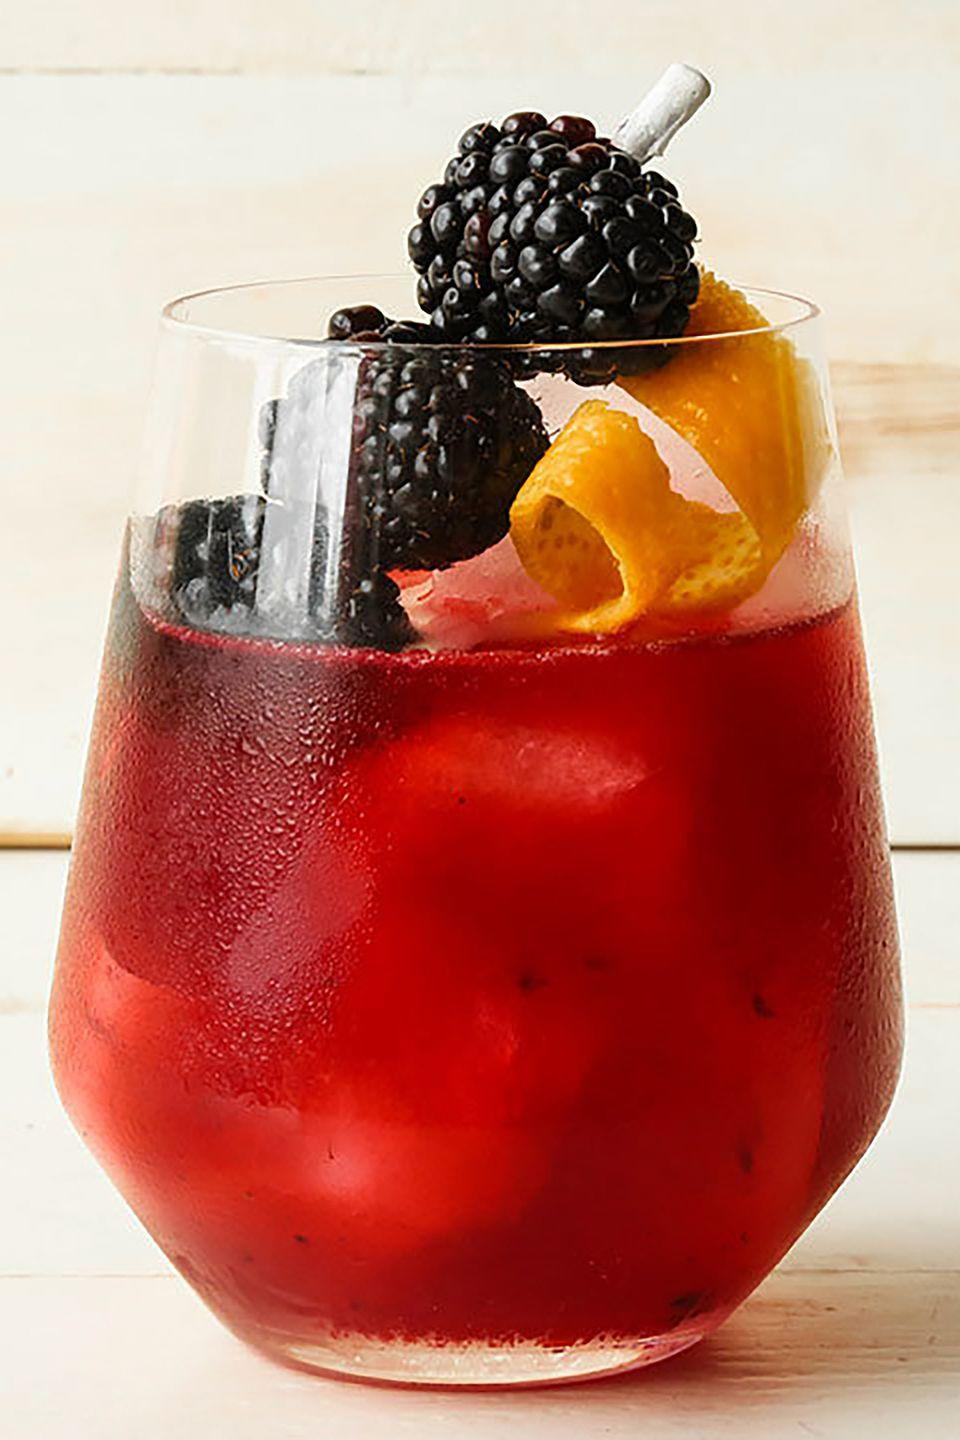 "<p><strong>Ingredients:</strong><br></p><p>4 Blackberries, plus more for garnish if desired</p><p>3⁄4 oz Raspberry or blackberry liqueur</p><p>1⁄2 oz Agave nectar</p><p>1 1⁄2 oz Cazadores blanco tequila </p><p>3⁄4 oz Fresh lime juice</p><p><strong>Directions: </strong></p><p>Combine the blackberries, berry liqueur, and agave nectar in a shaker and muddle. Add the tequila, the lime juice and ice, and shake well. Strain into a stemless wine glass, and garnish with 3 skewered blackberries and an orange peel.</p><p><em>Courtesy of Manny Hinojosa, global brand ambassador for <a href=""https://www.cazadores.com/"" rel=""nofollow noopener"" target=""_blank"" data-ylk=""slk:Tequila CAZADORES"" class=""link rapid-noclick-resp"">Tequila CAZADORES</a></em></p>"